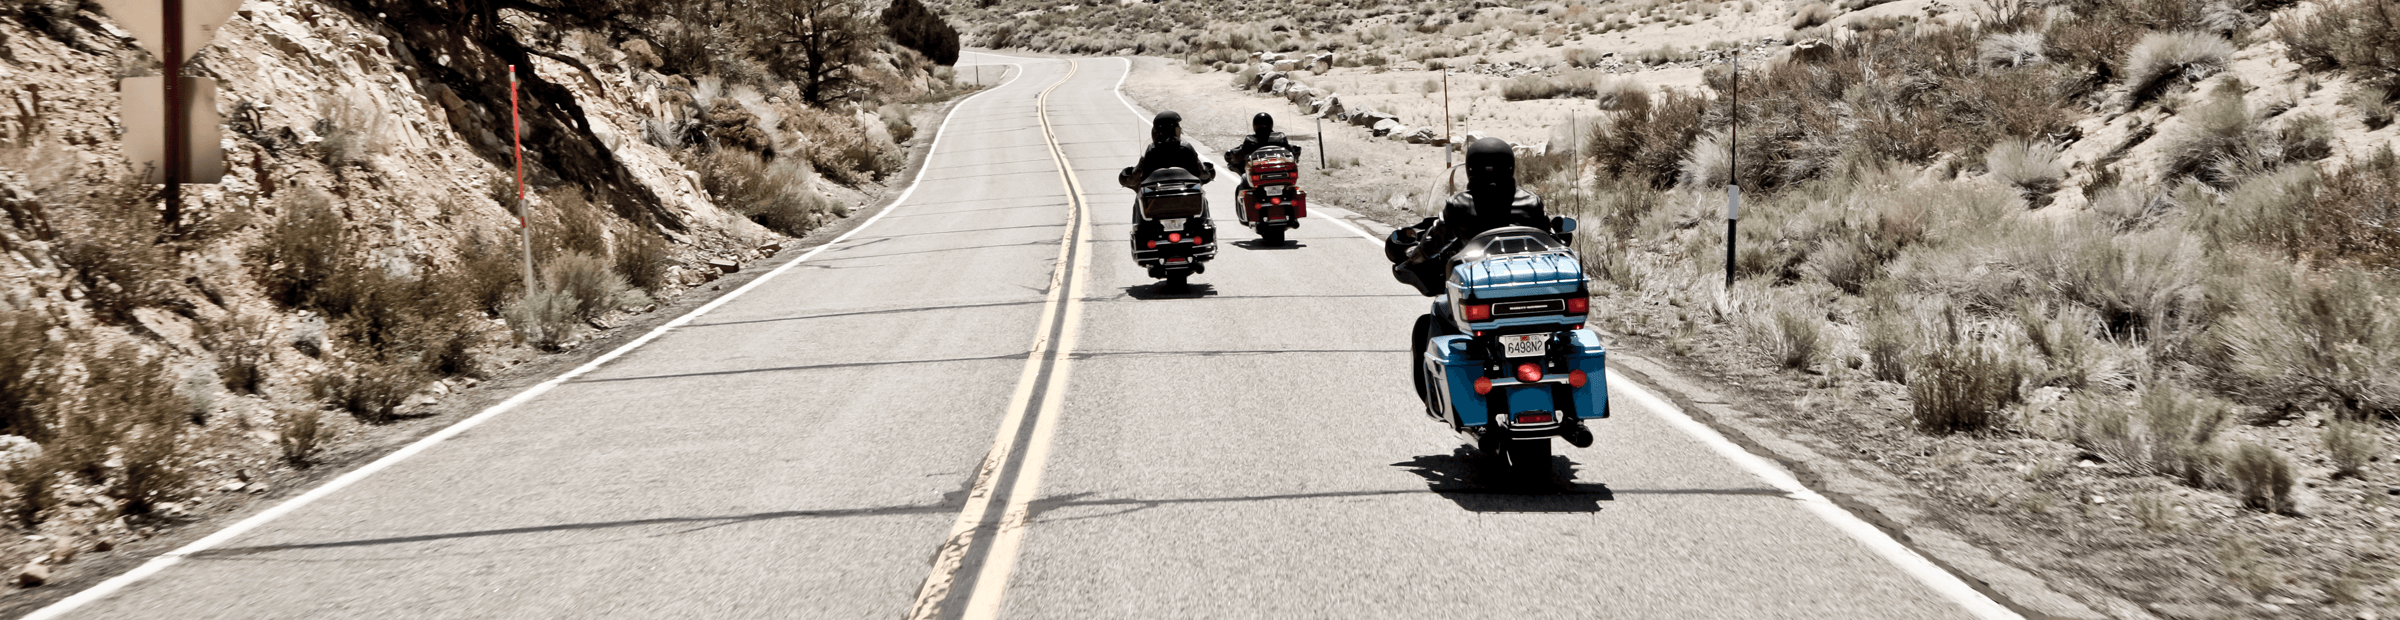 Book a test ride - take yours today